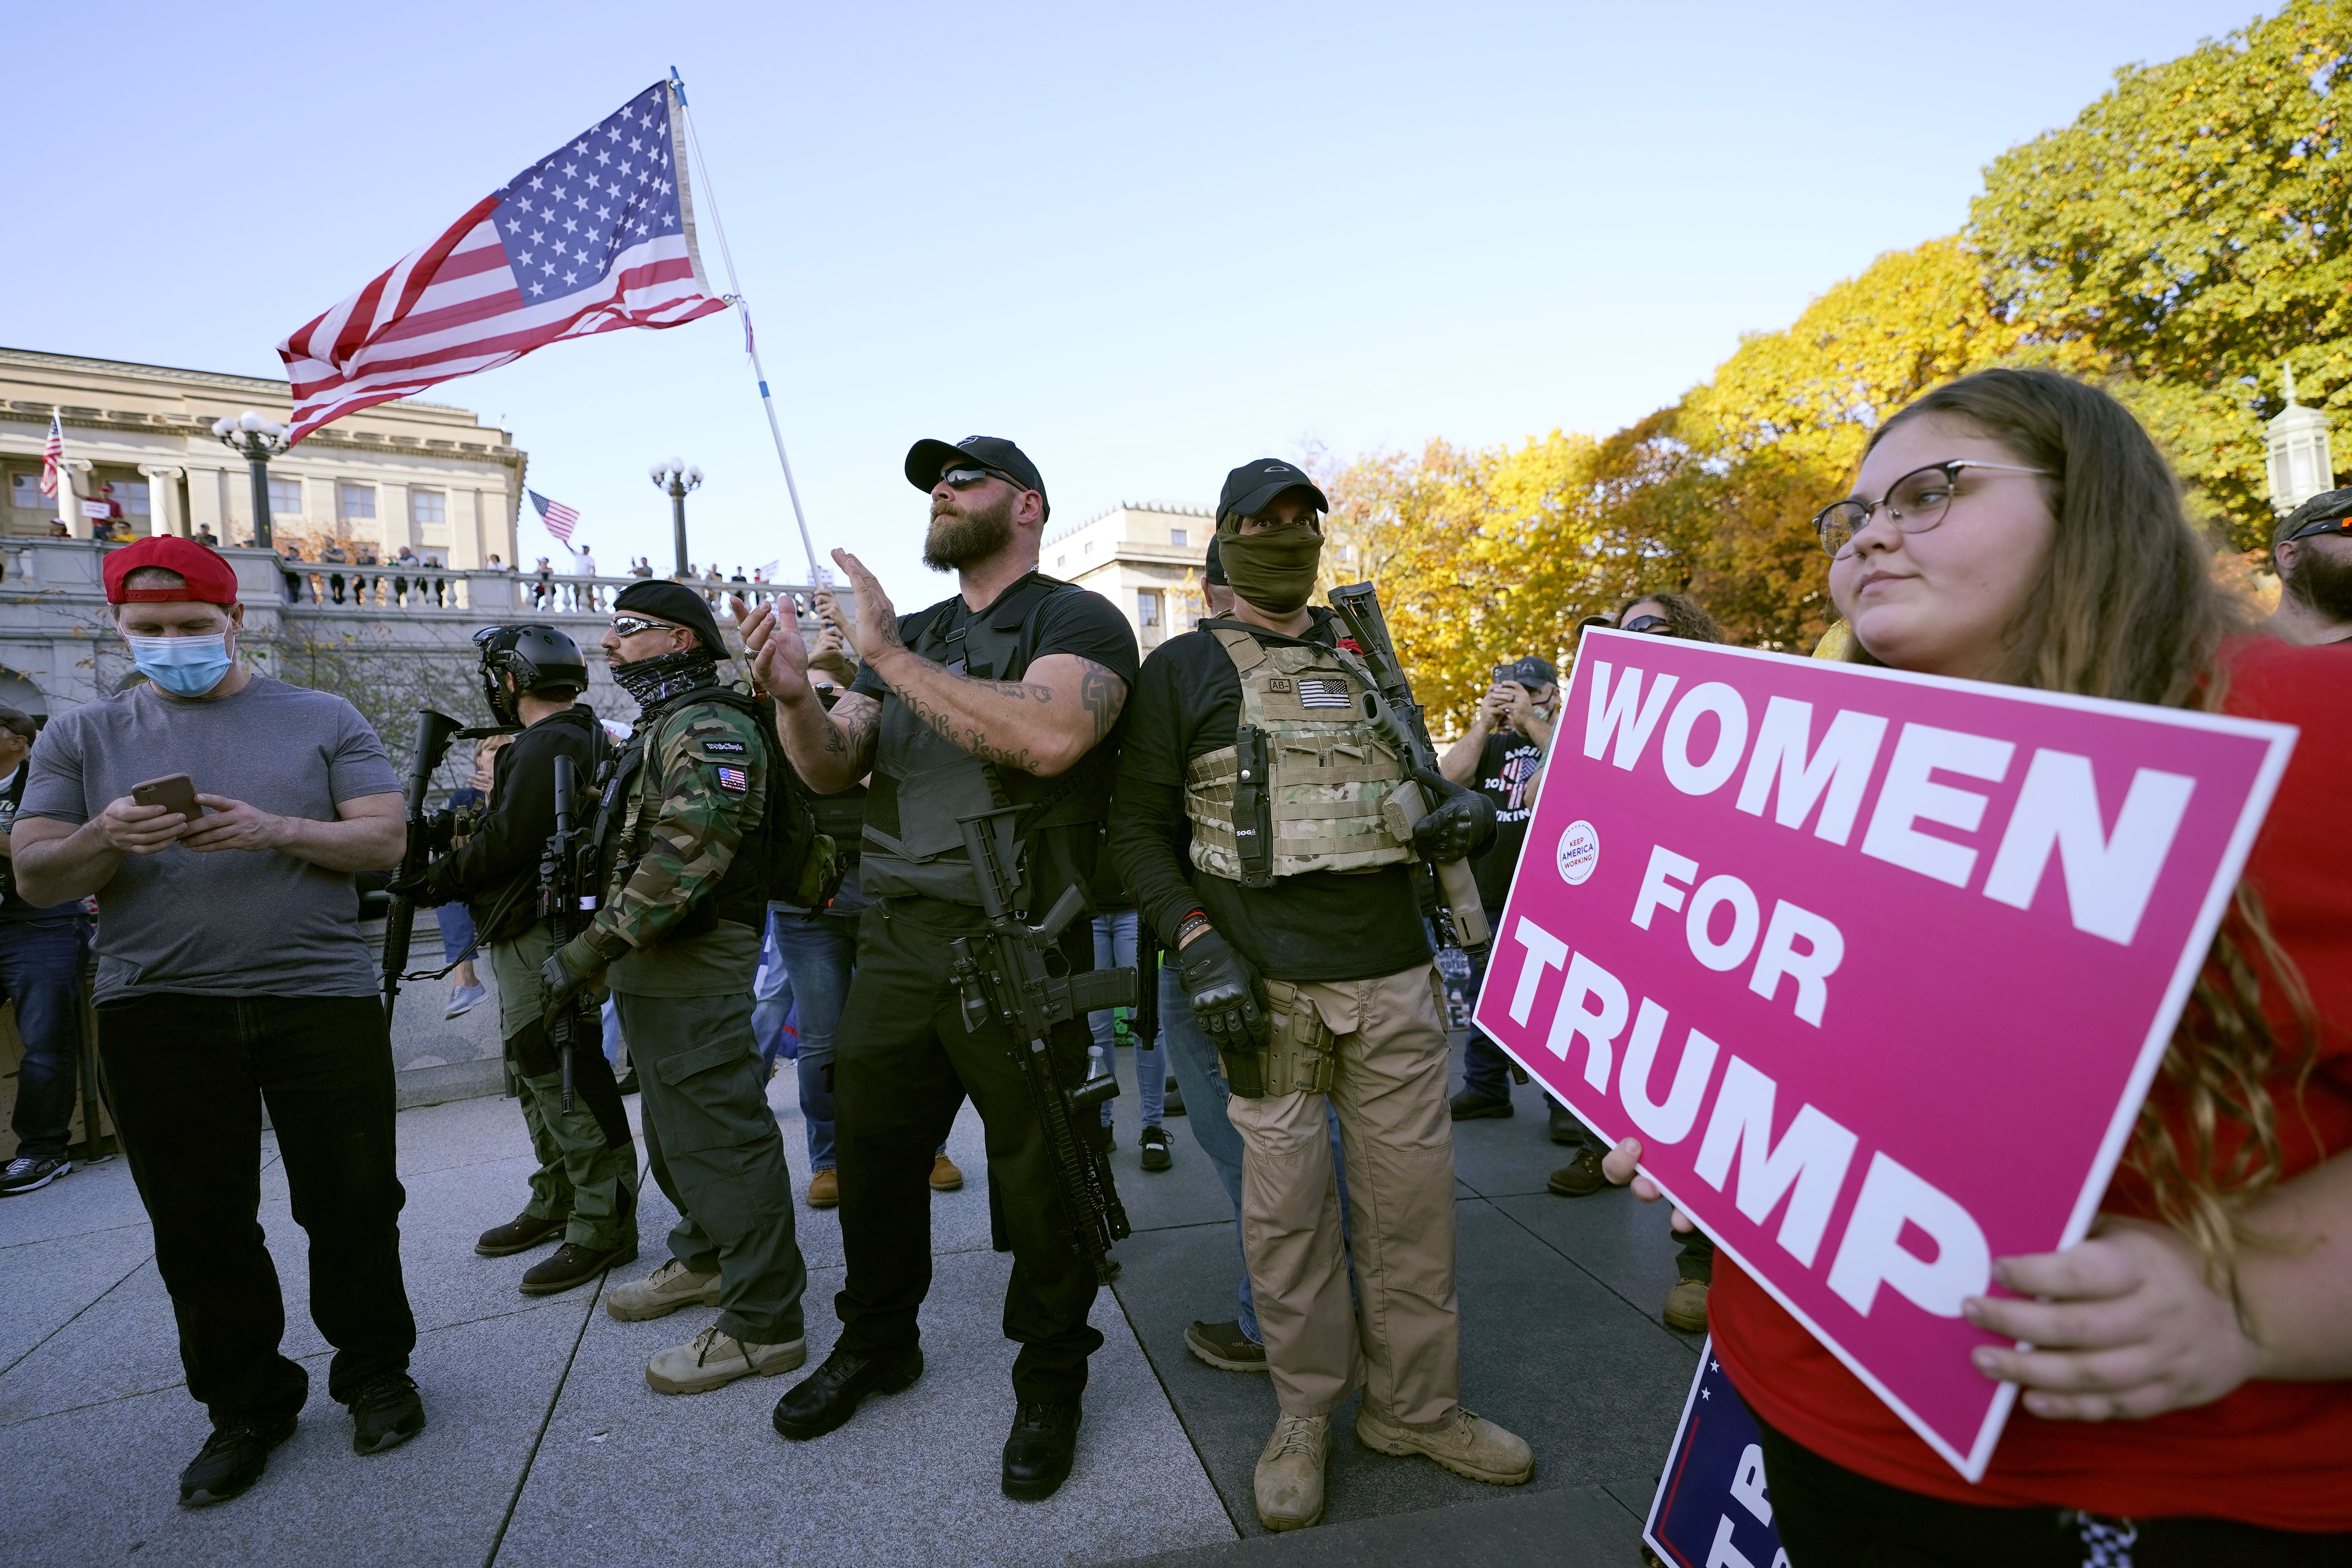 Supporters of President Donald Trump carry firearms while demonstrating outside the Pennsylvania State Capitol, Saturday, Nov. 7, 2020, in Harrisburg, Pa., after Democrat Joe Biden defeated Trump to become 46th president of the United States. (AP Photo/Julio Cortez)